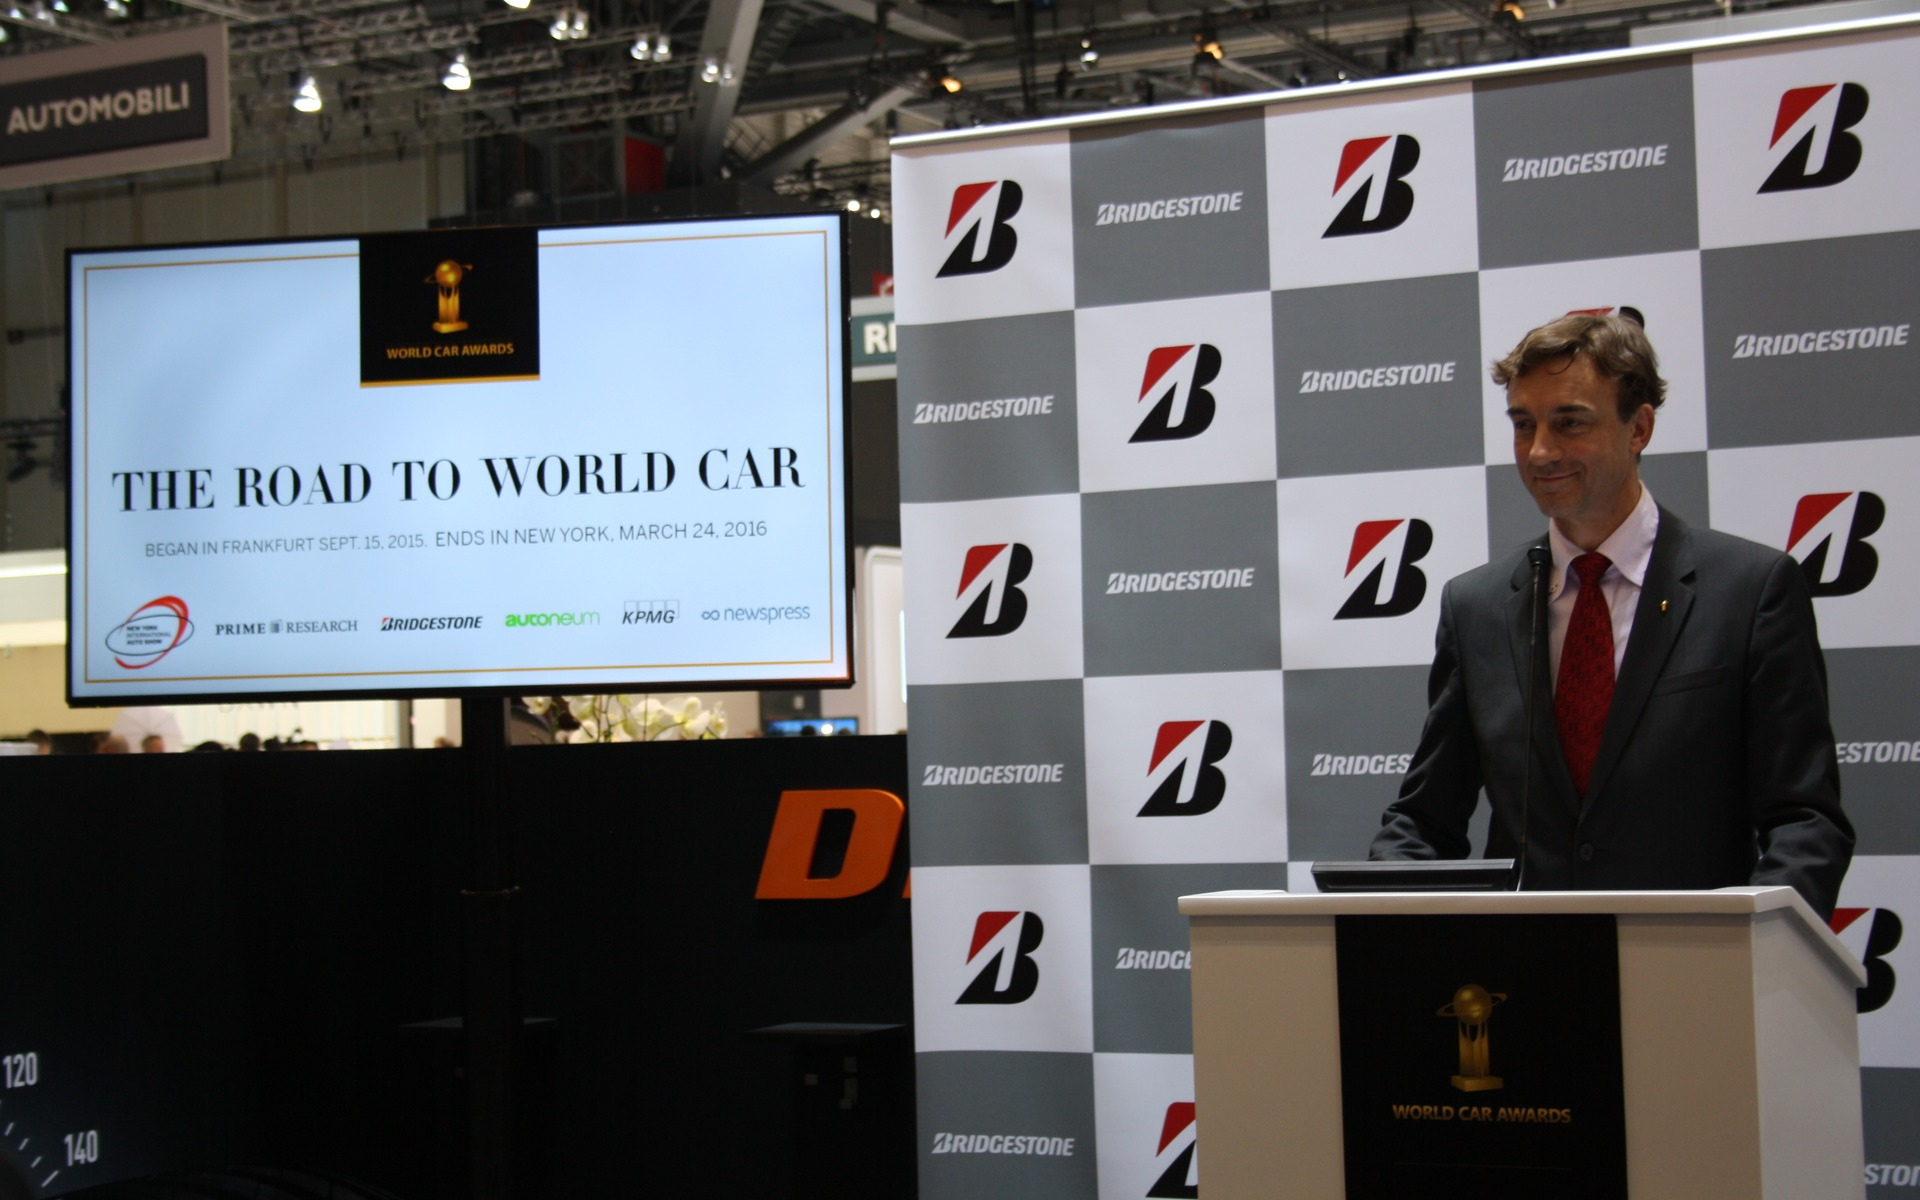 2016 World Car of the Year Awards at the Geneva Motor Show